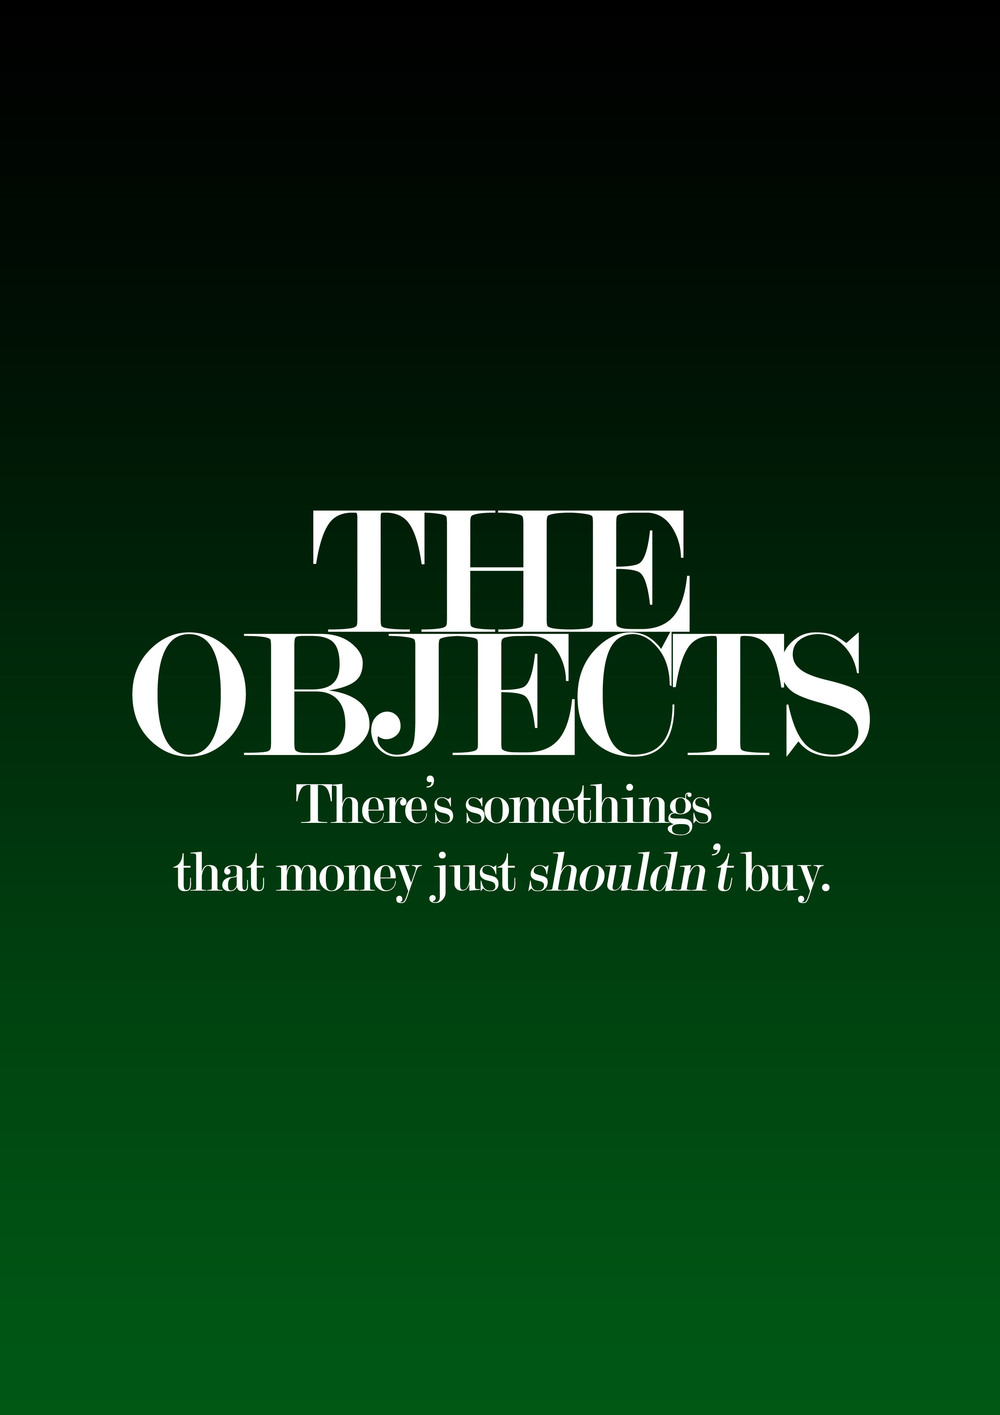 Objects Poster.jpg